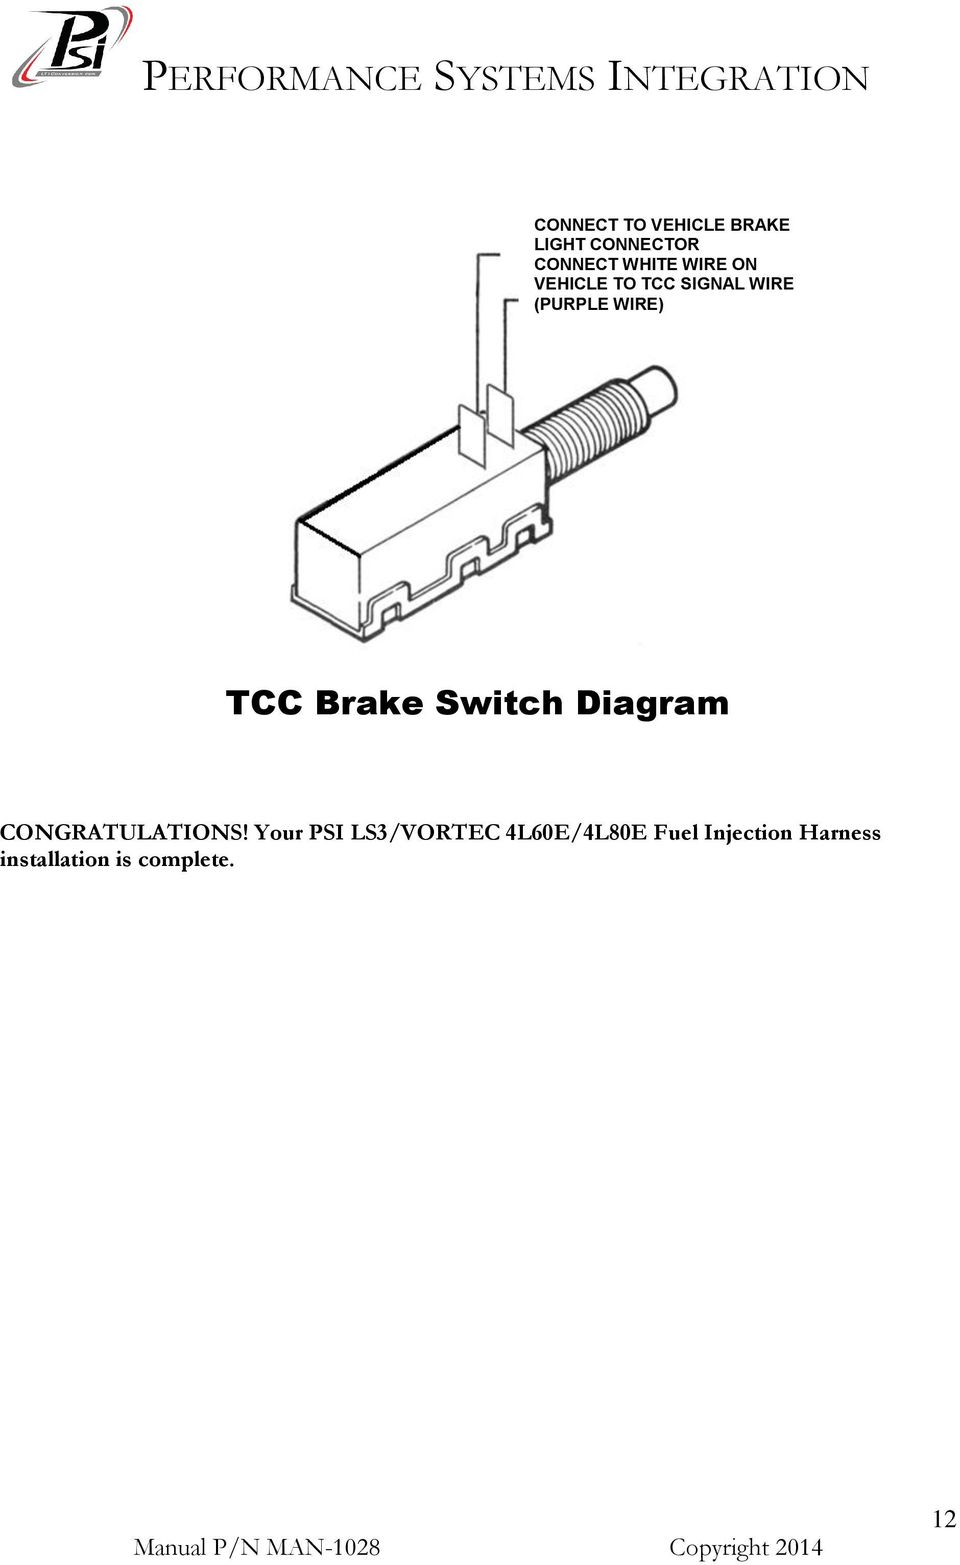 medium resolution of brake switch diagram congratulations